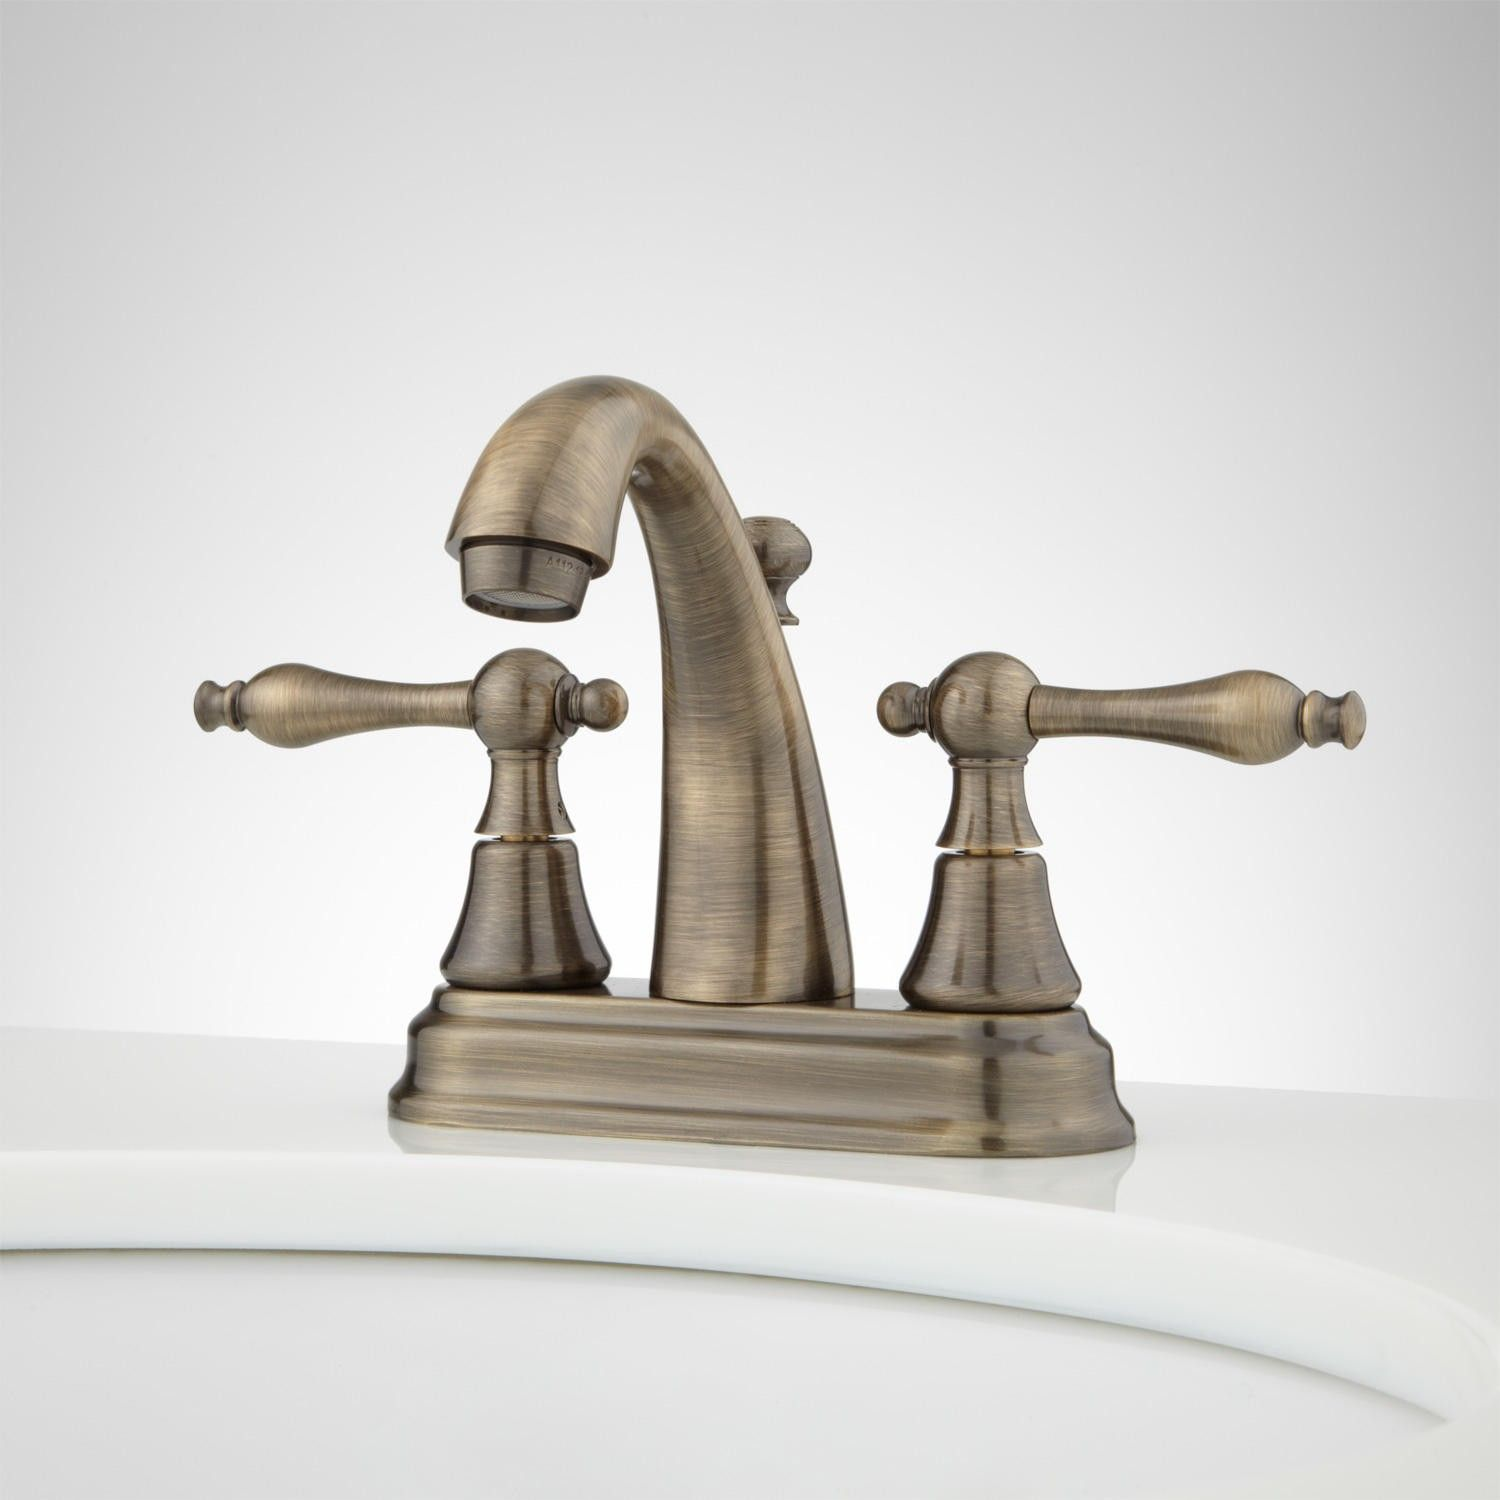 Dalles Centerset Gooseneck Bathroom Faucet | Faucet, Bathroom sink ...